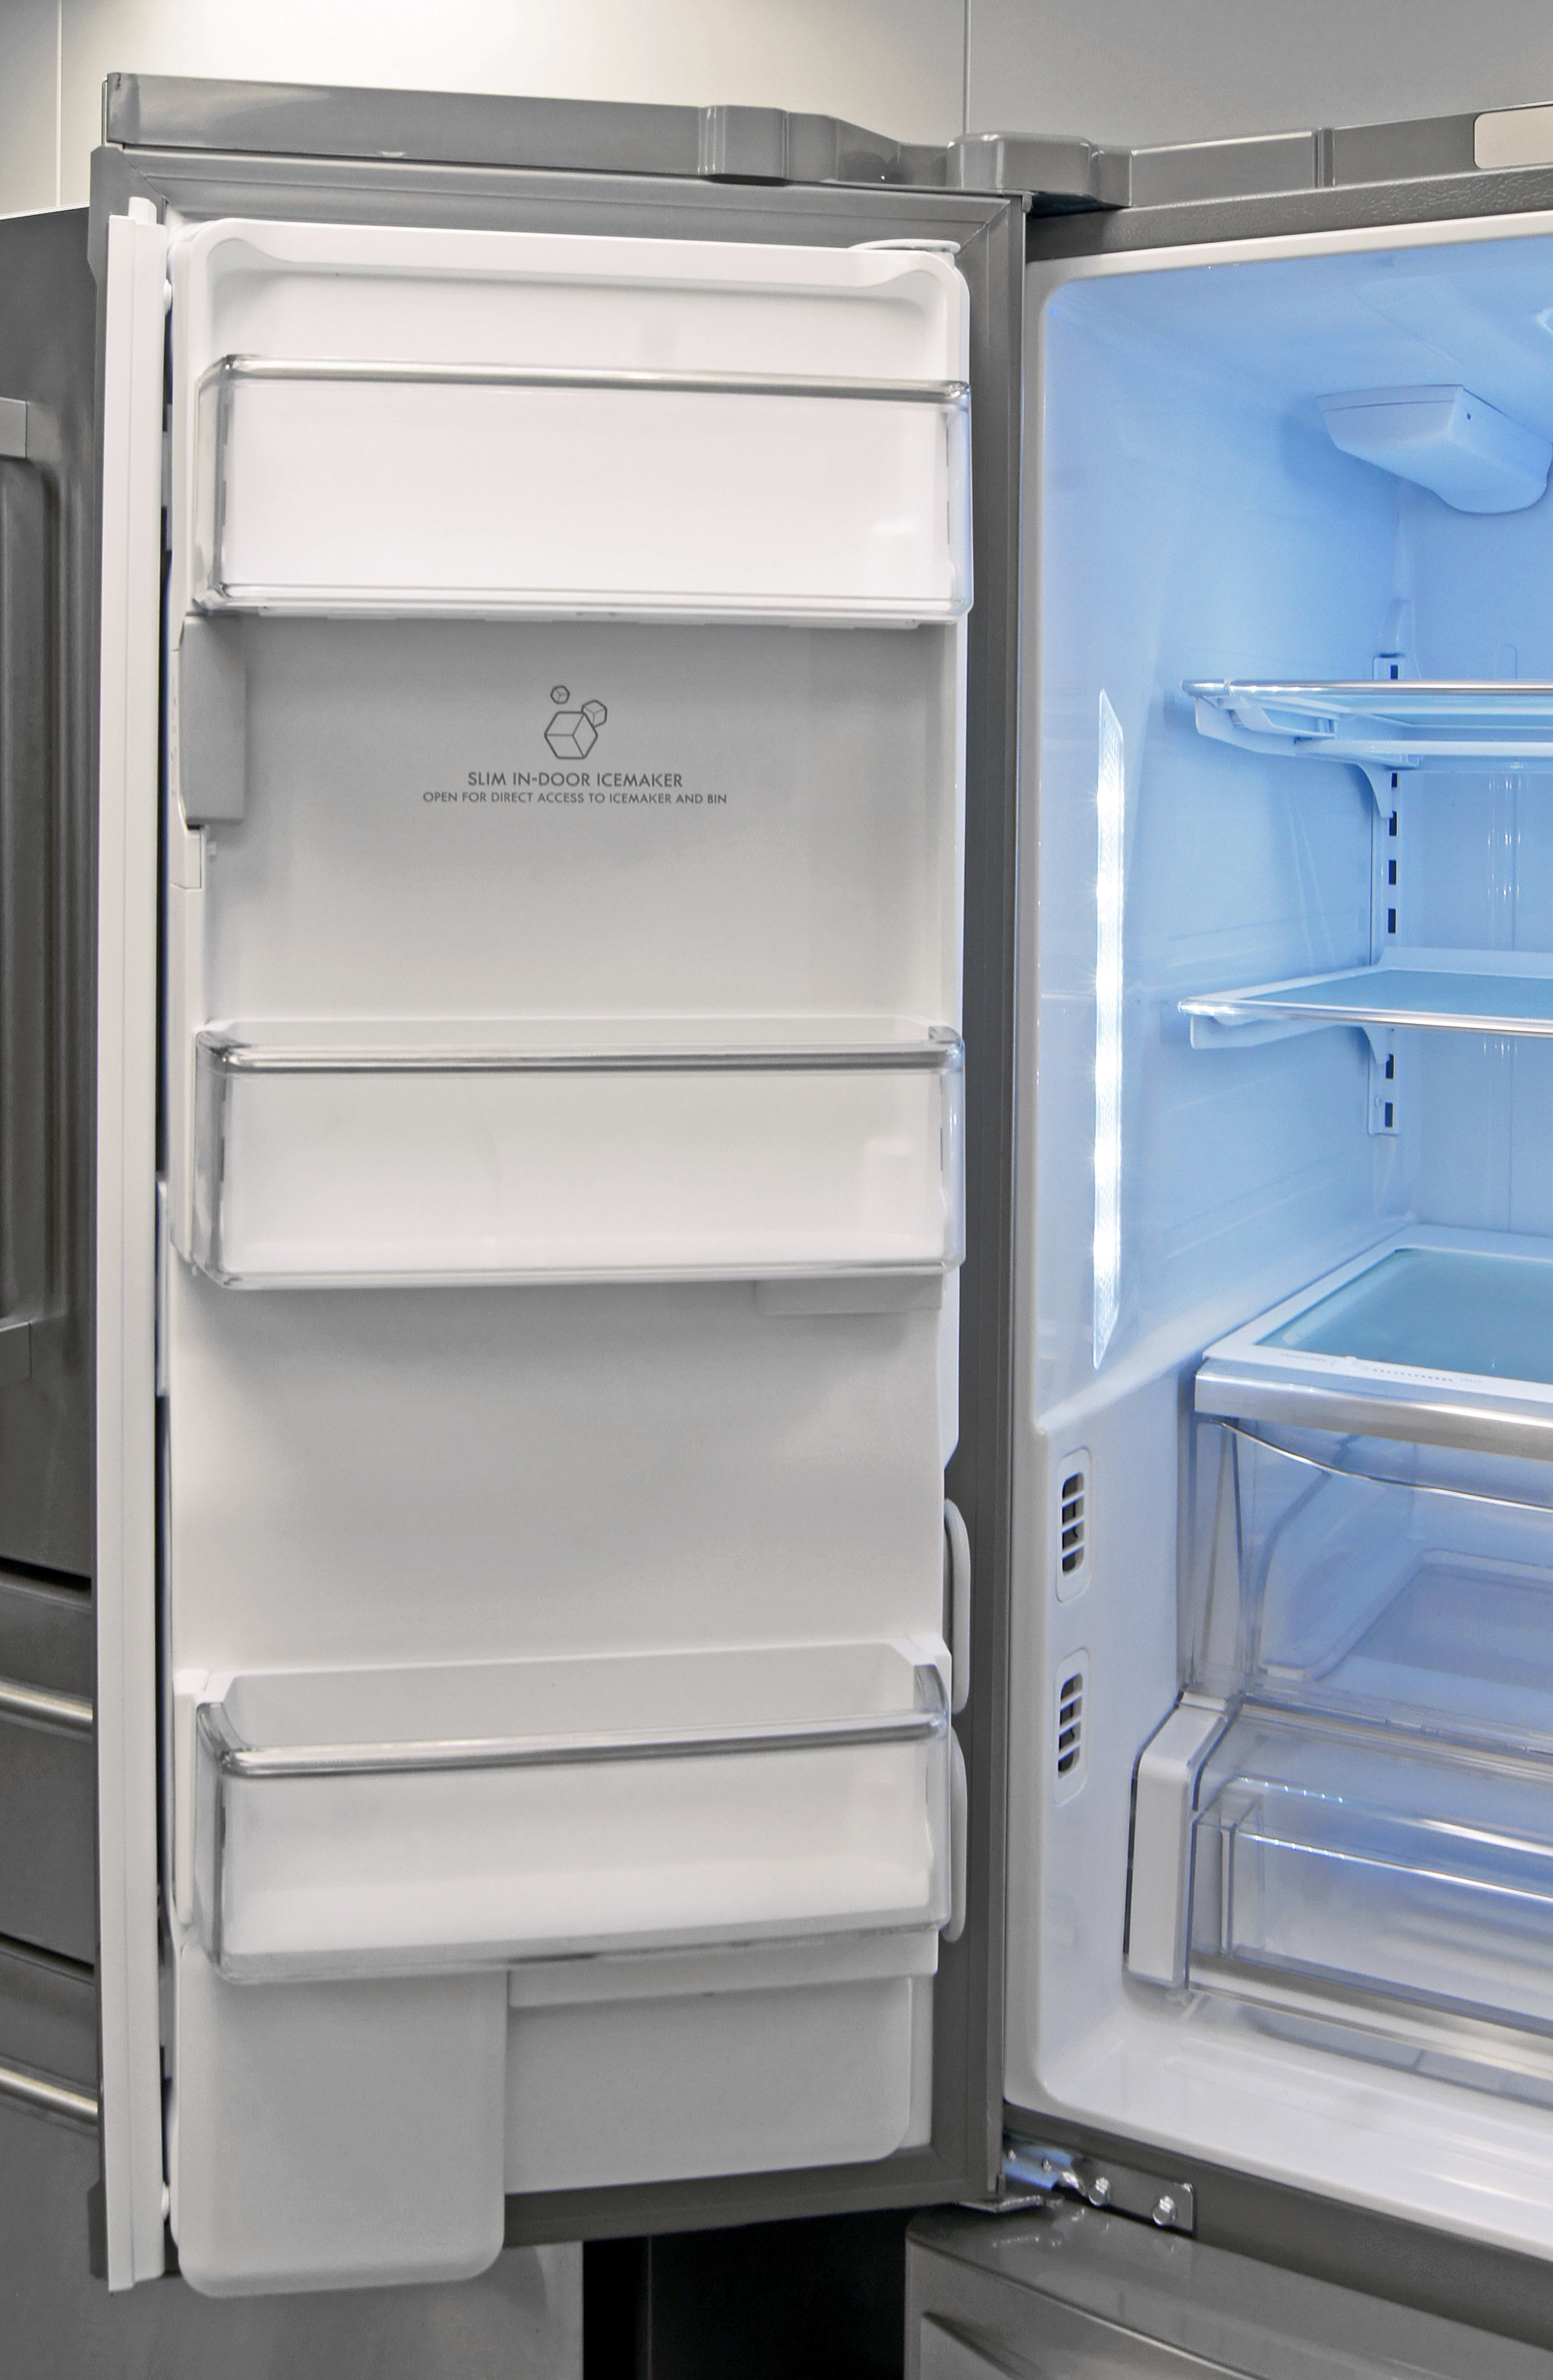 The Kenmore Elite 74025's slim icemaker keeps left door storage shallow, but still quite usable.